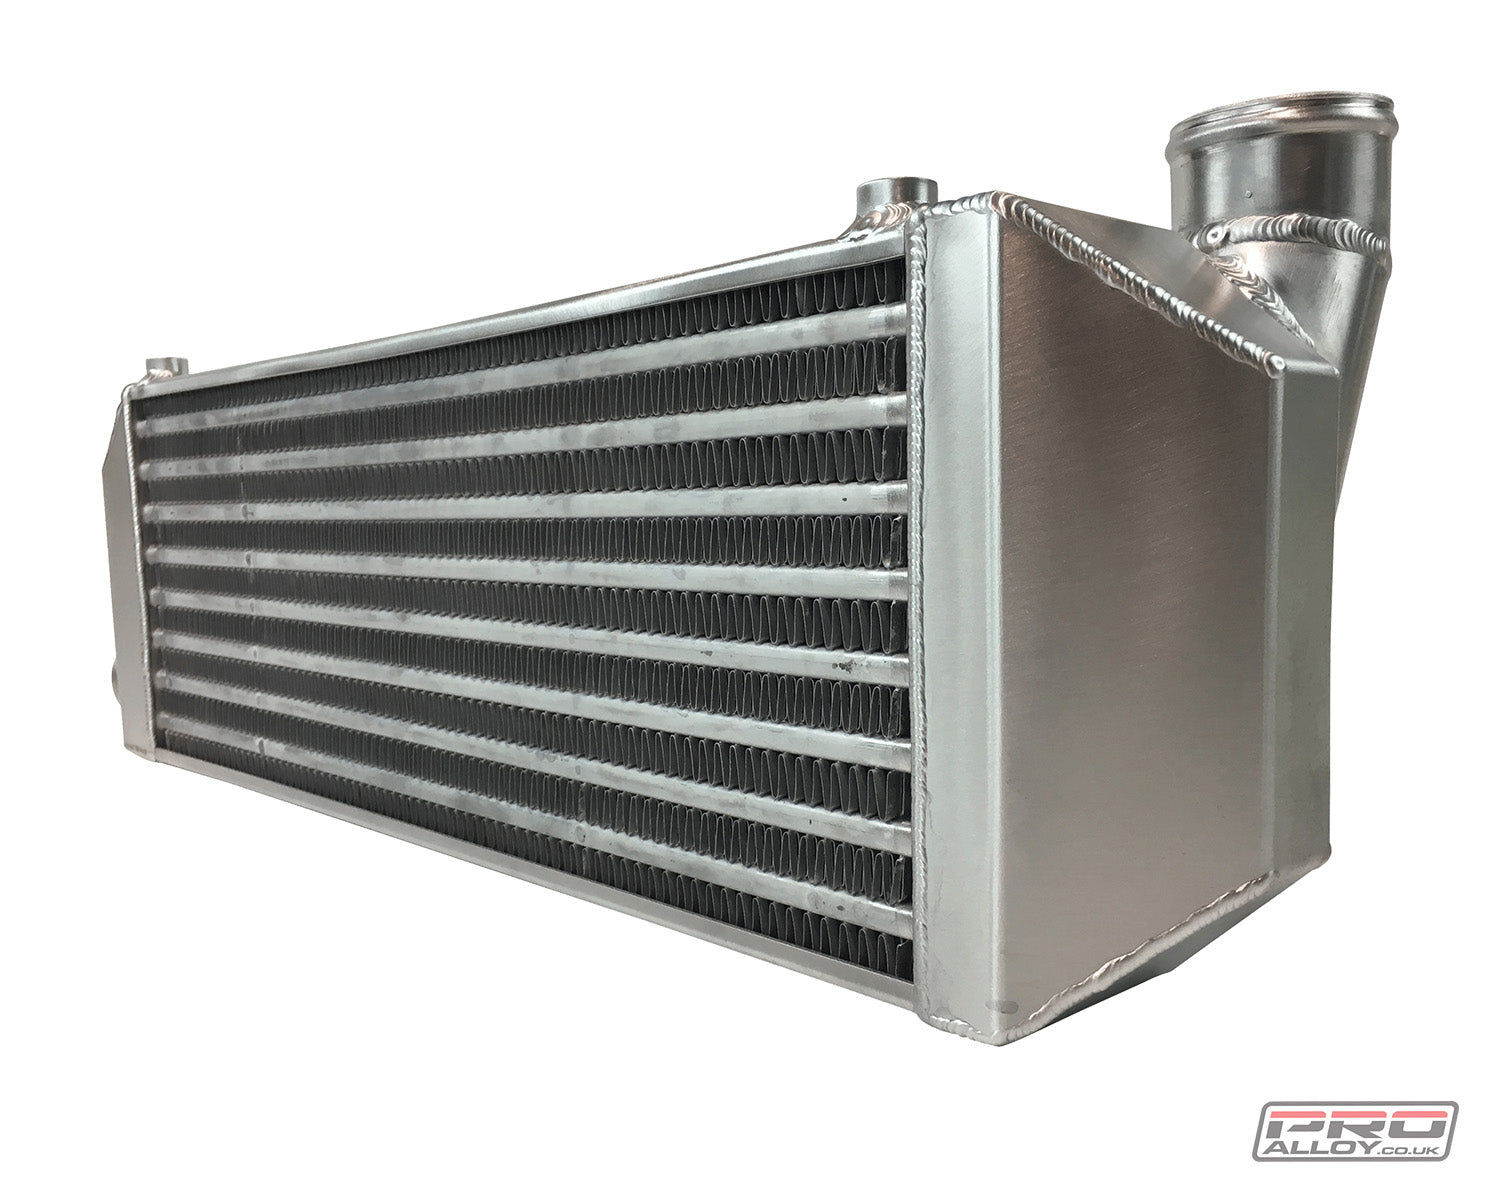 Astra G and Zafira A Intercooler